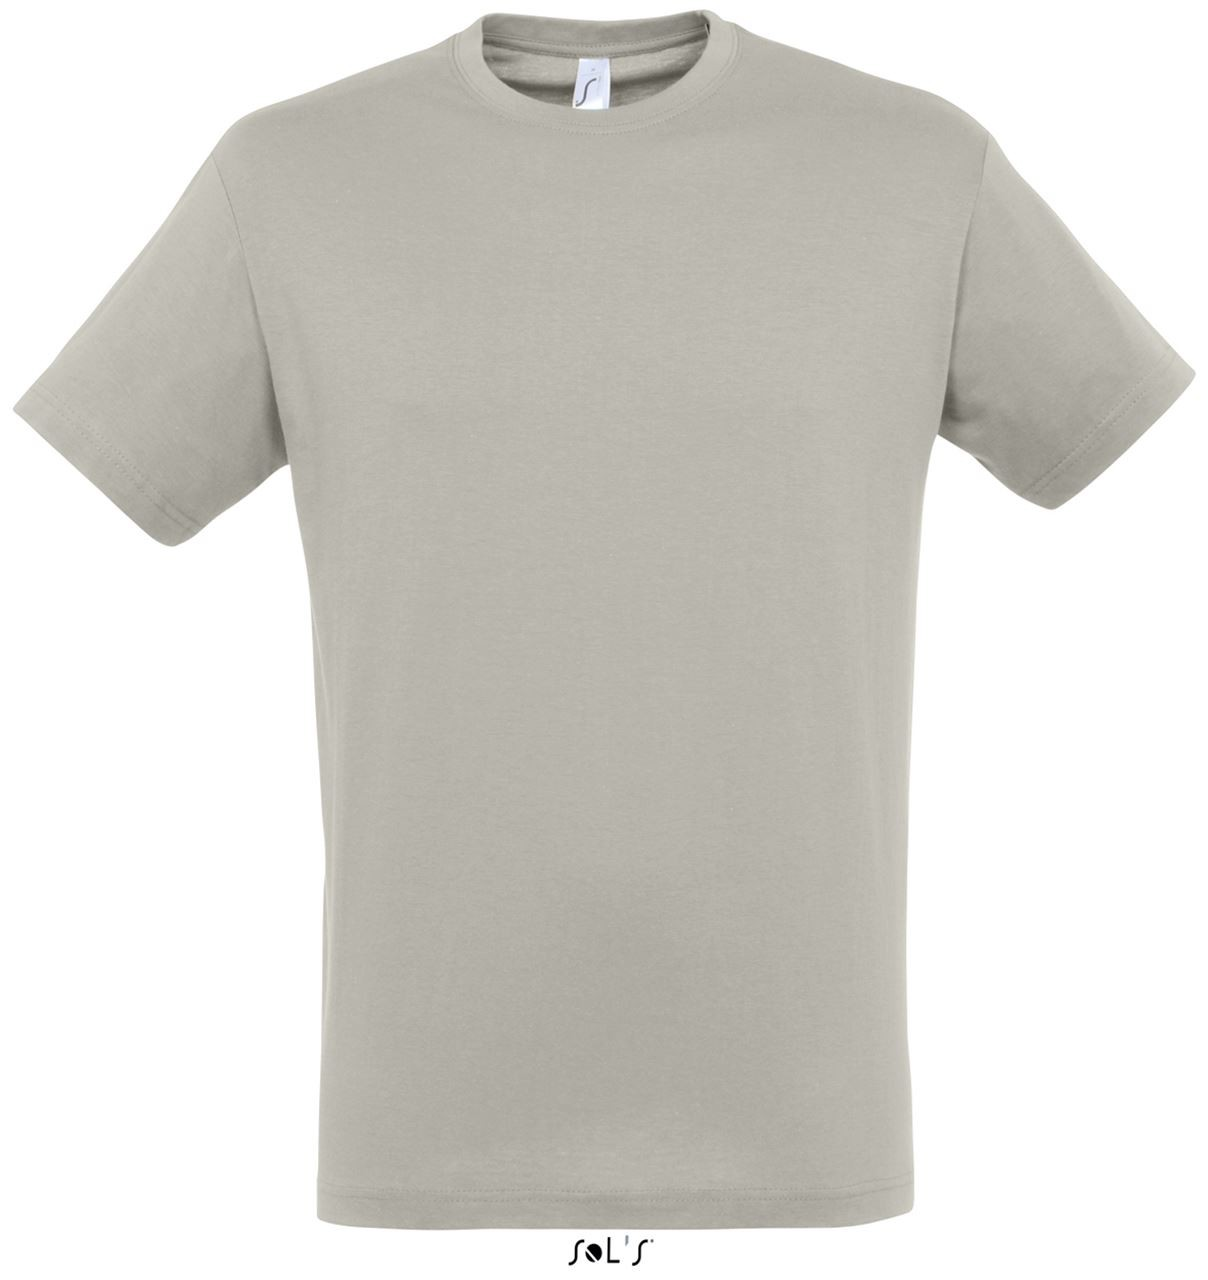 t light shirt d standout london grey chest logo marl nicce